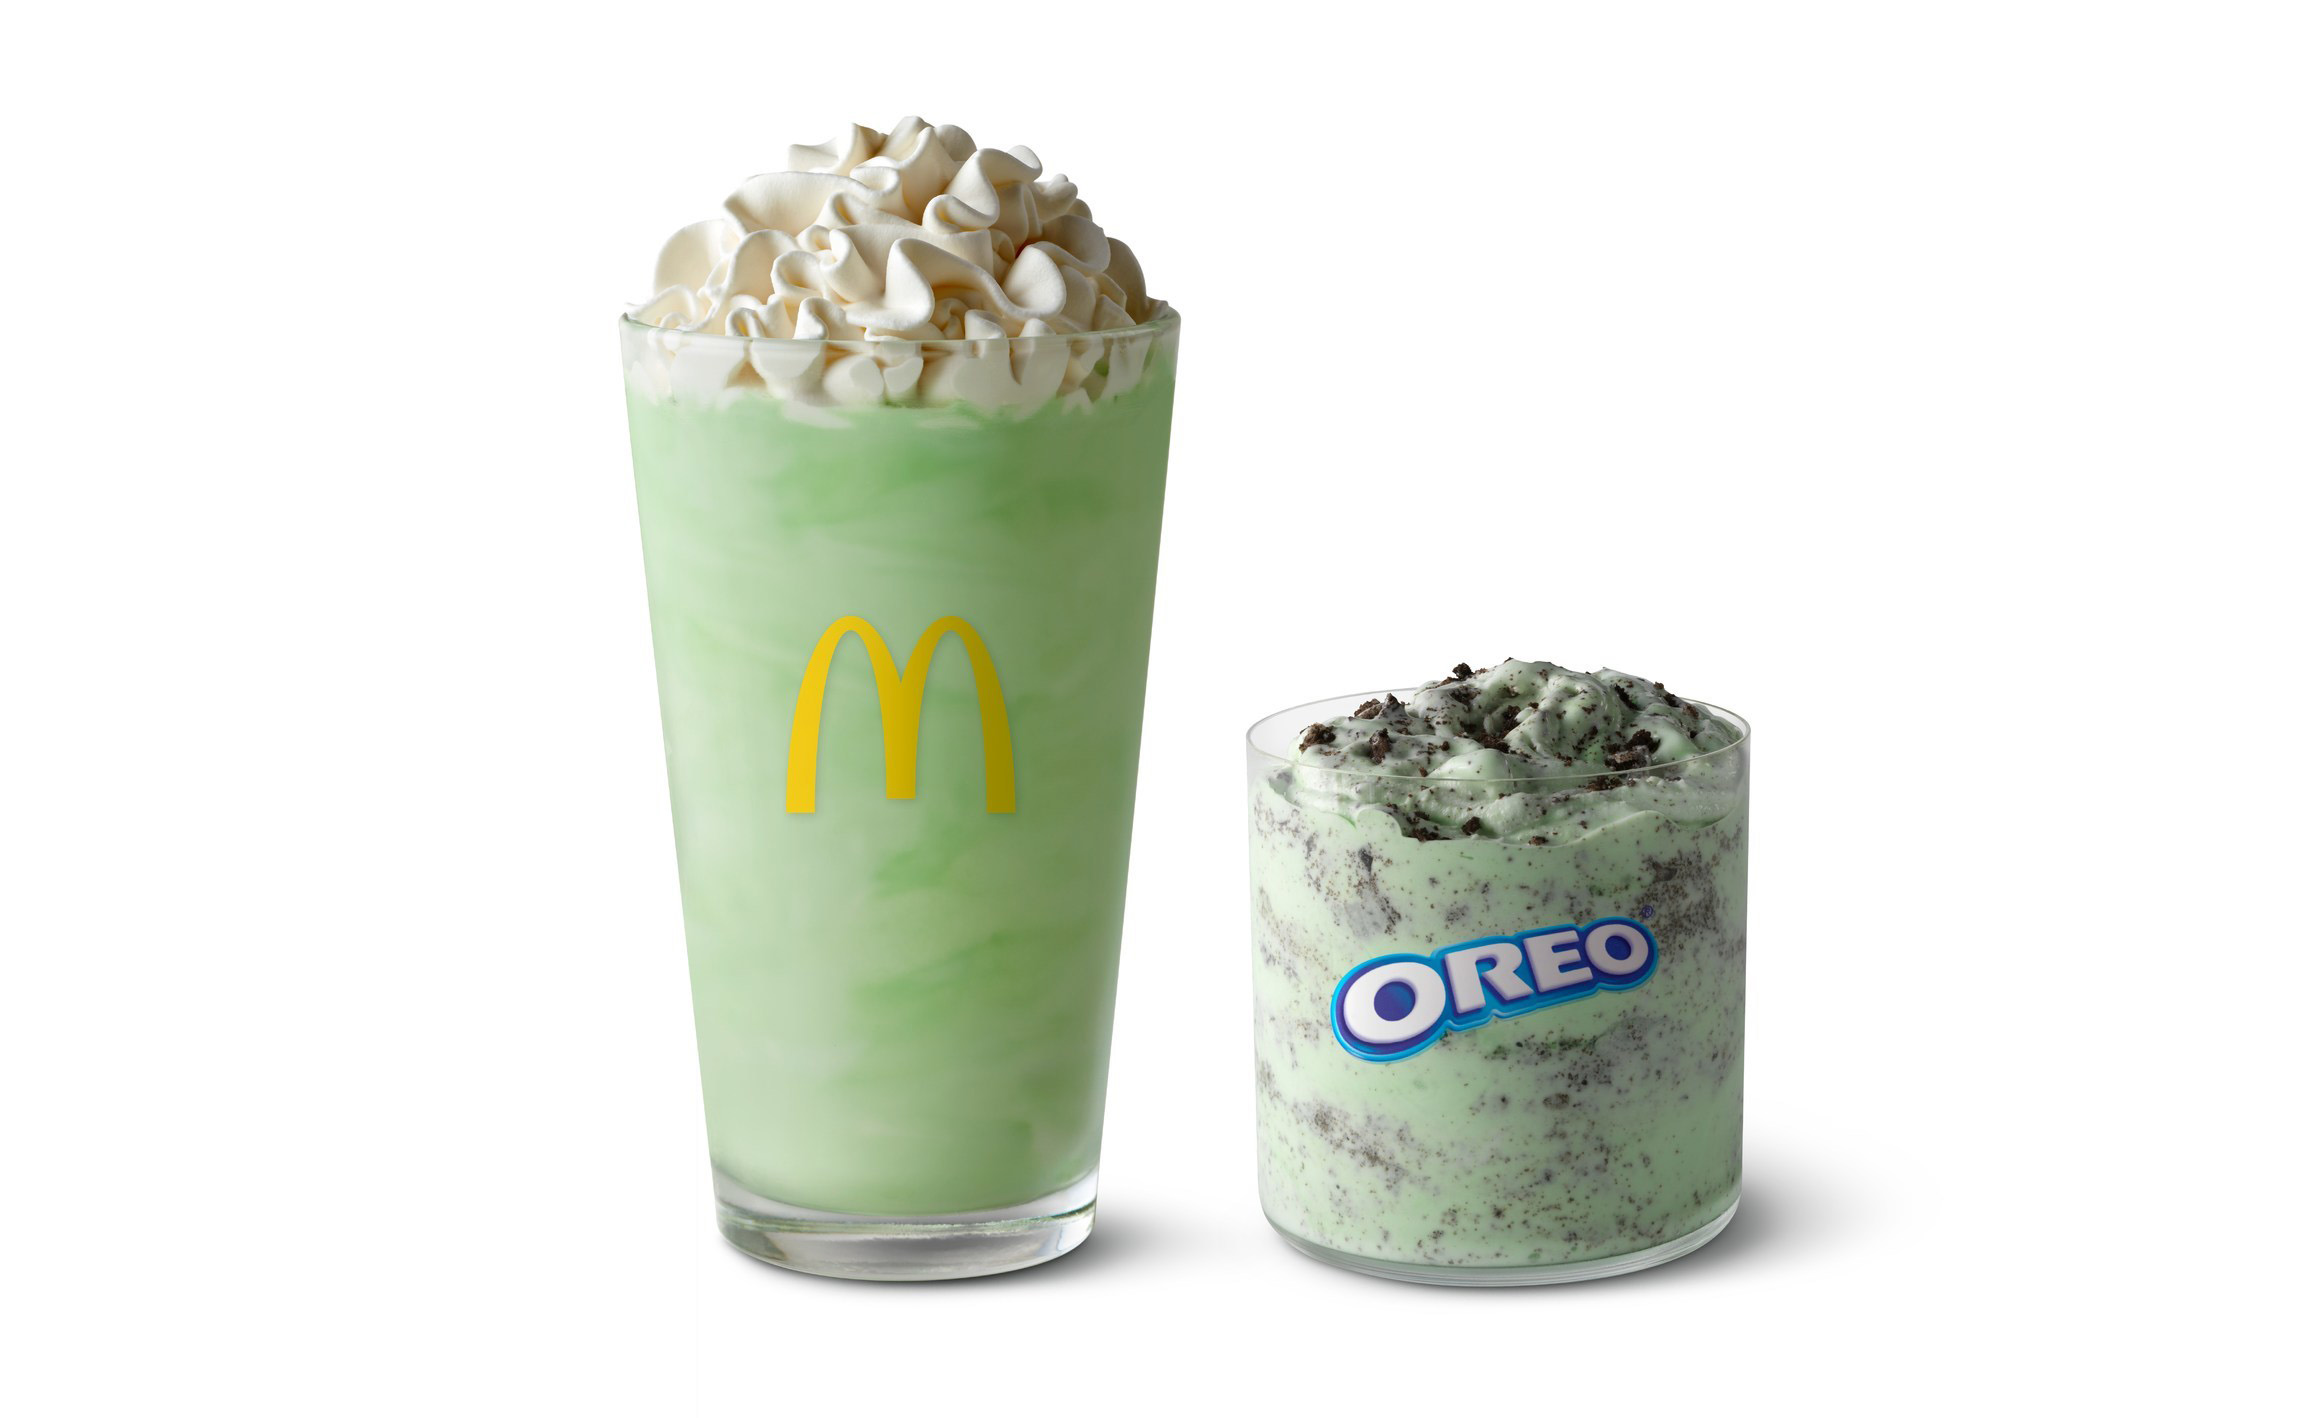 """The Shamrock Shake(left) will return to participating McDonald's restaurants nationwide Feb. 15 """"to mark the first green of spring."""" Itwill be joined on the menu by the Oreo Shamrock McFlurry (right)."""